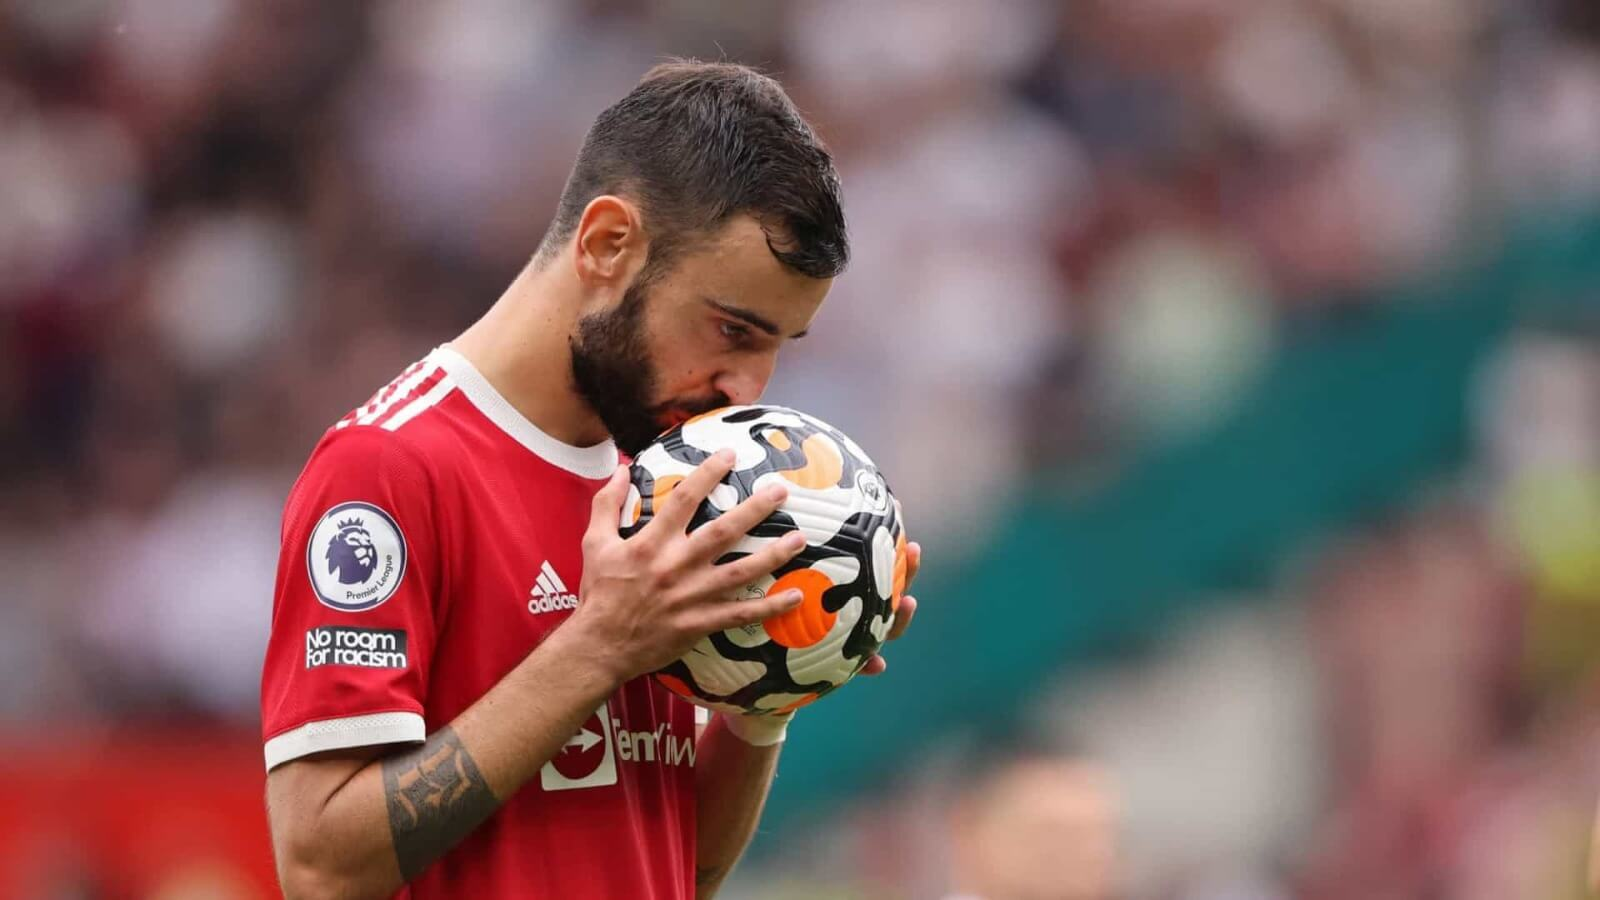 Fernandes apologized for missing penalty against Aston Villa